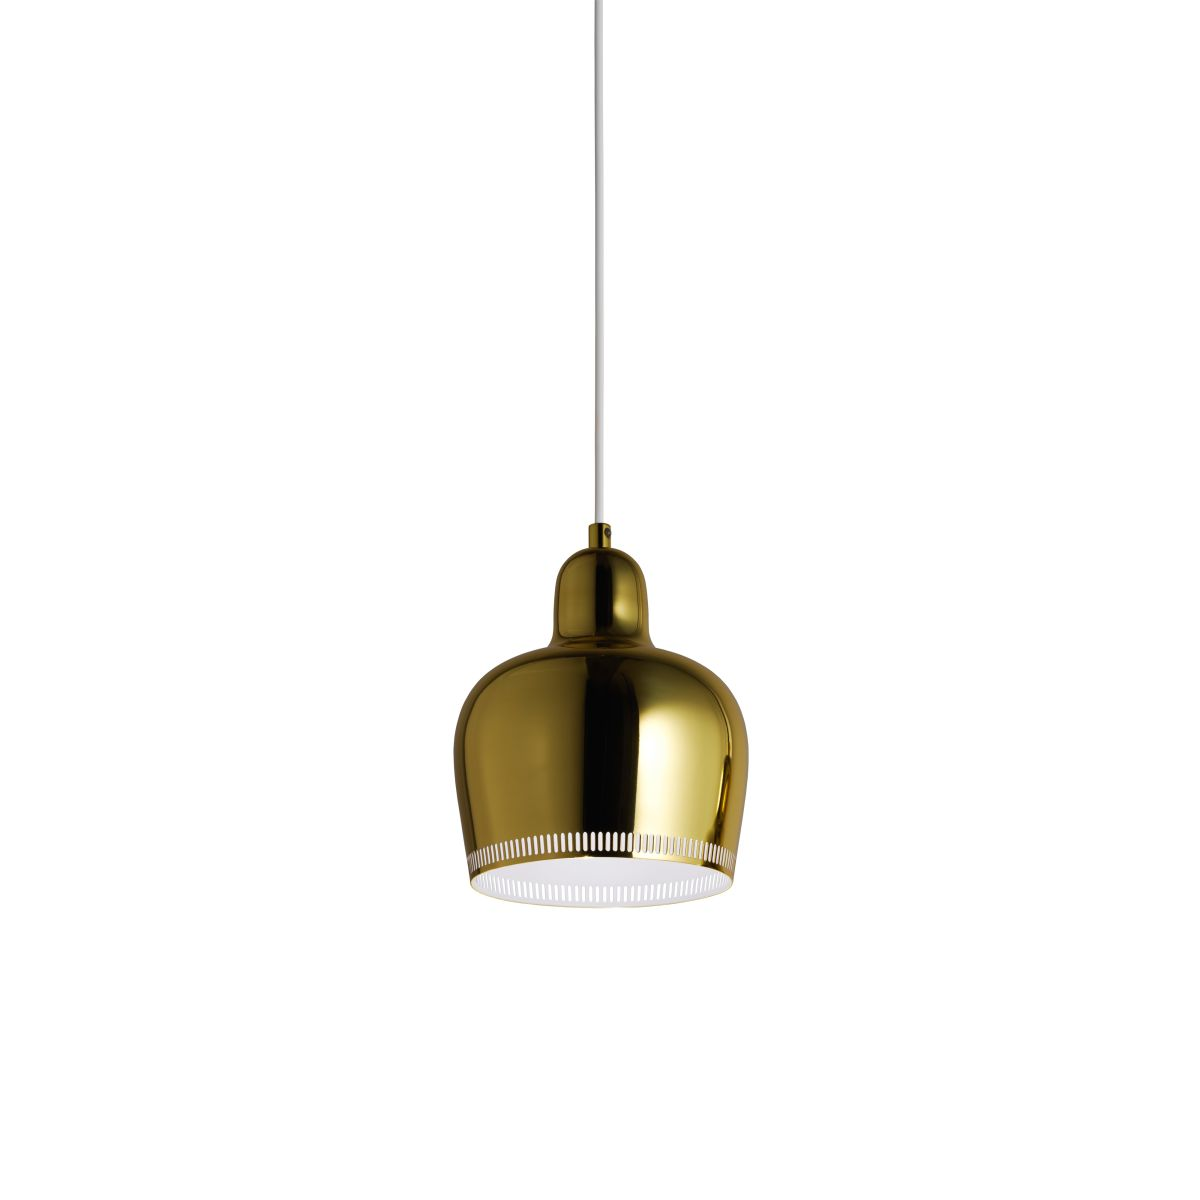 Pendant_Light_A330S_Golden_Bell_Web-1977975